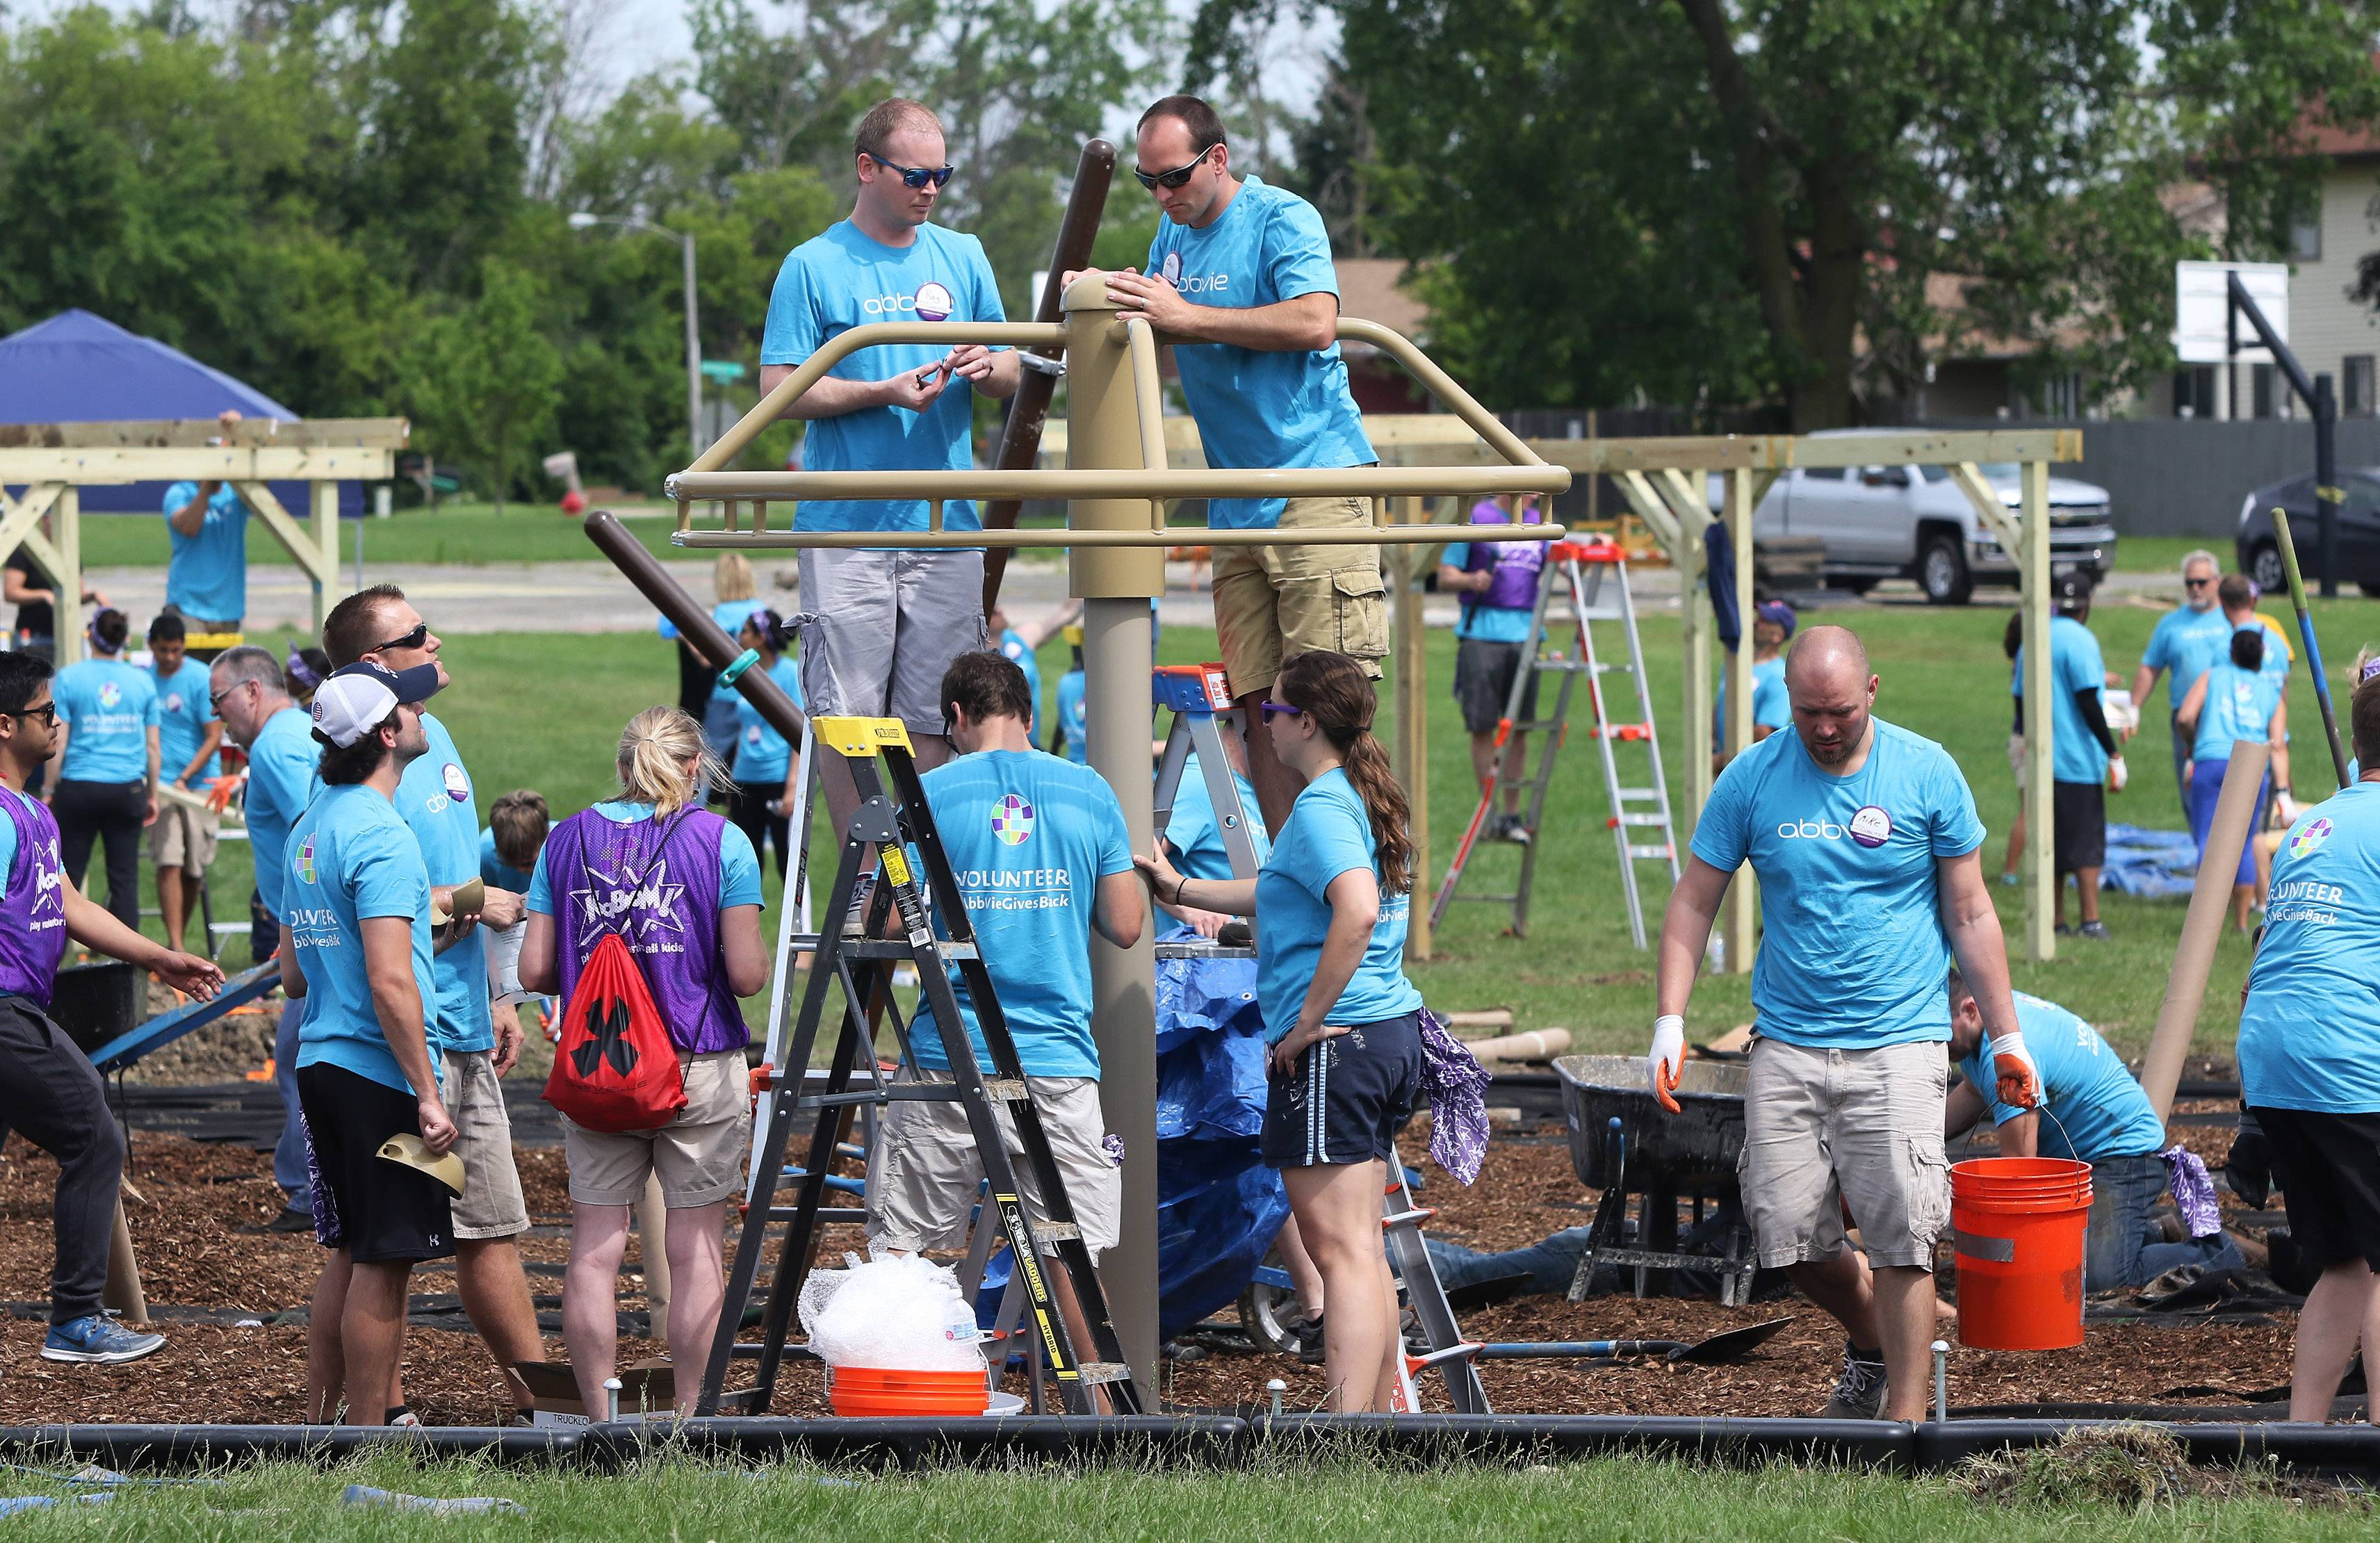 More than 400 volunteers built a new playground Thursday at A.J. Katzenmaier Academy in North Chicago. Employees from AbbVie, sailors from Naval Station Great Lakes and local community members joined KaBOOM! to work on the project.